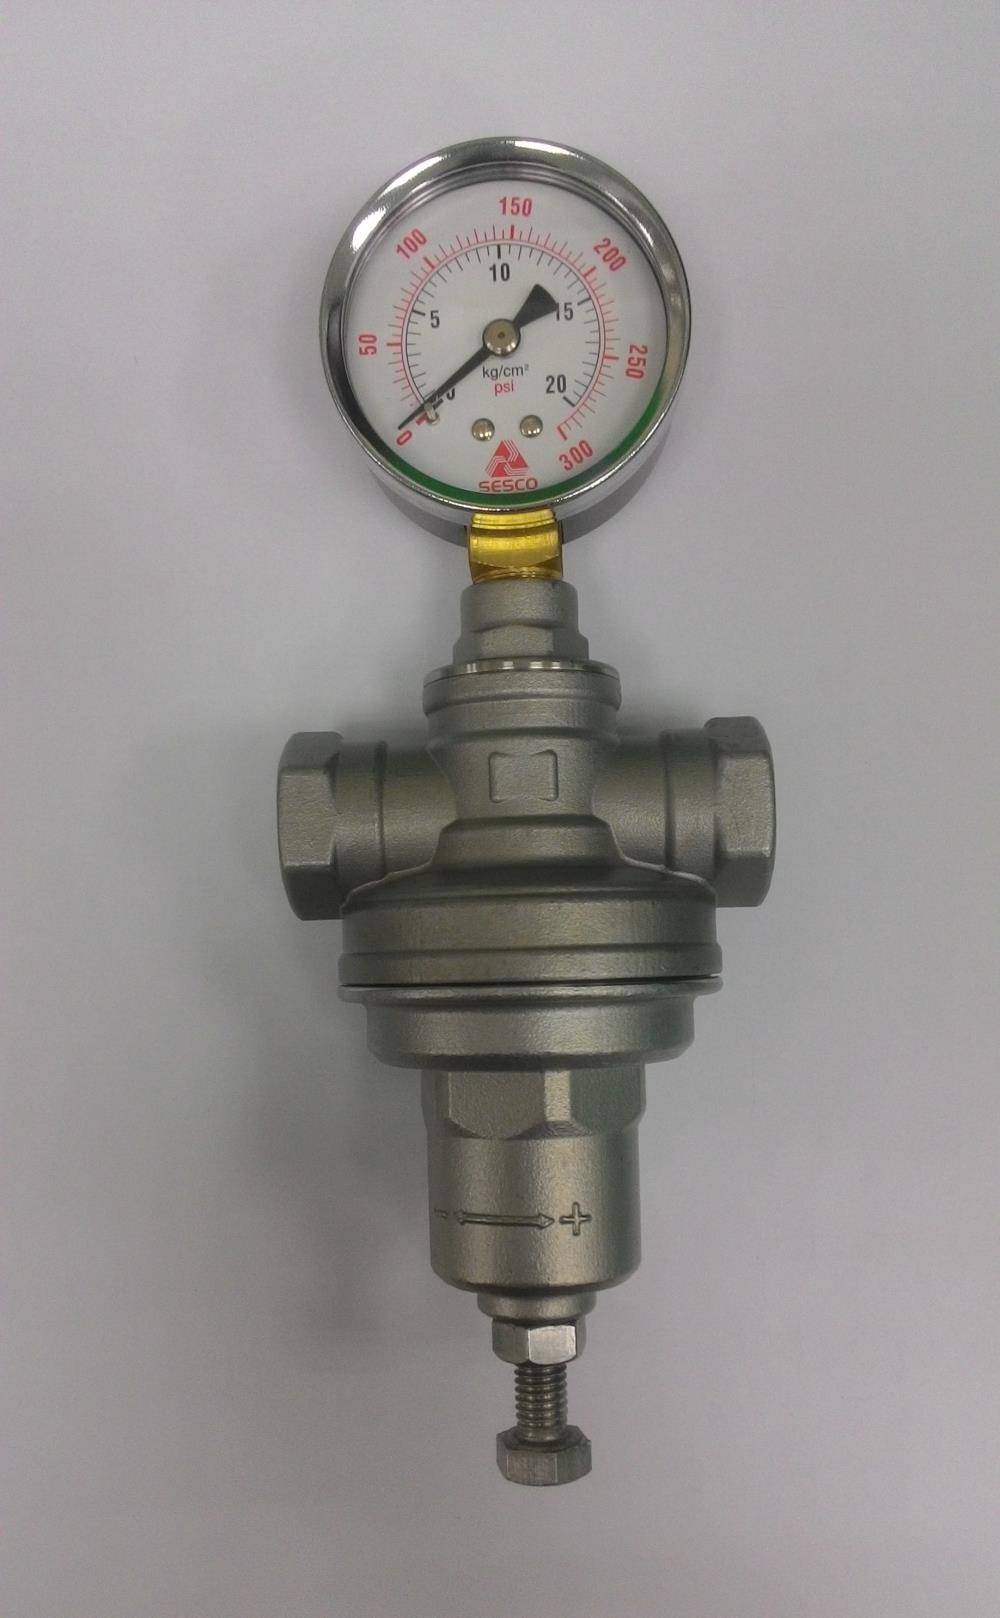 Pressure Reducing Valve For Steam,PRV SS 304, BOWING , Pressure Reducing Valve, วาล์วลดแรงดัน,BOWING,Instruments and Controls/Regulators